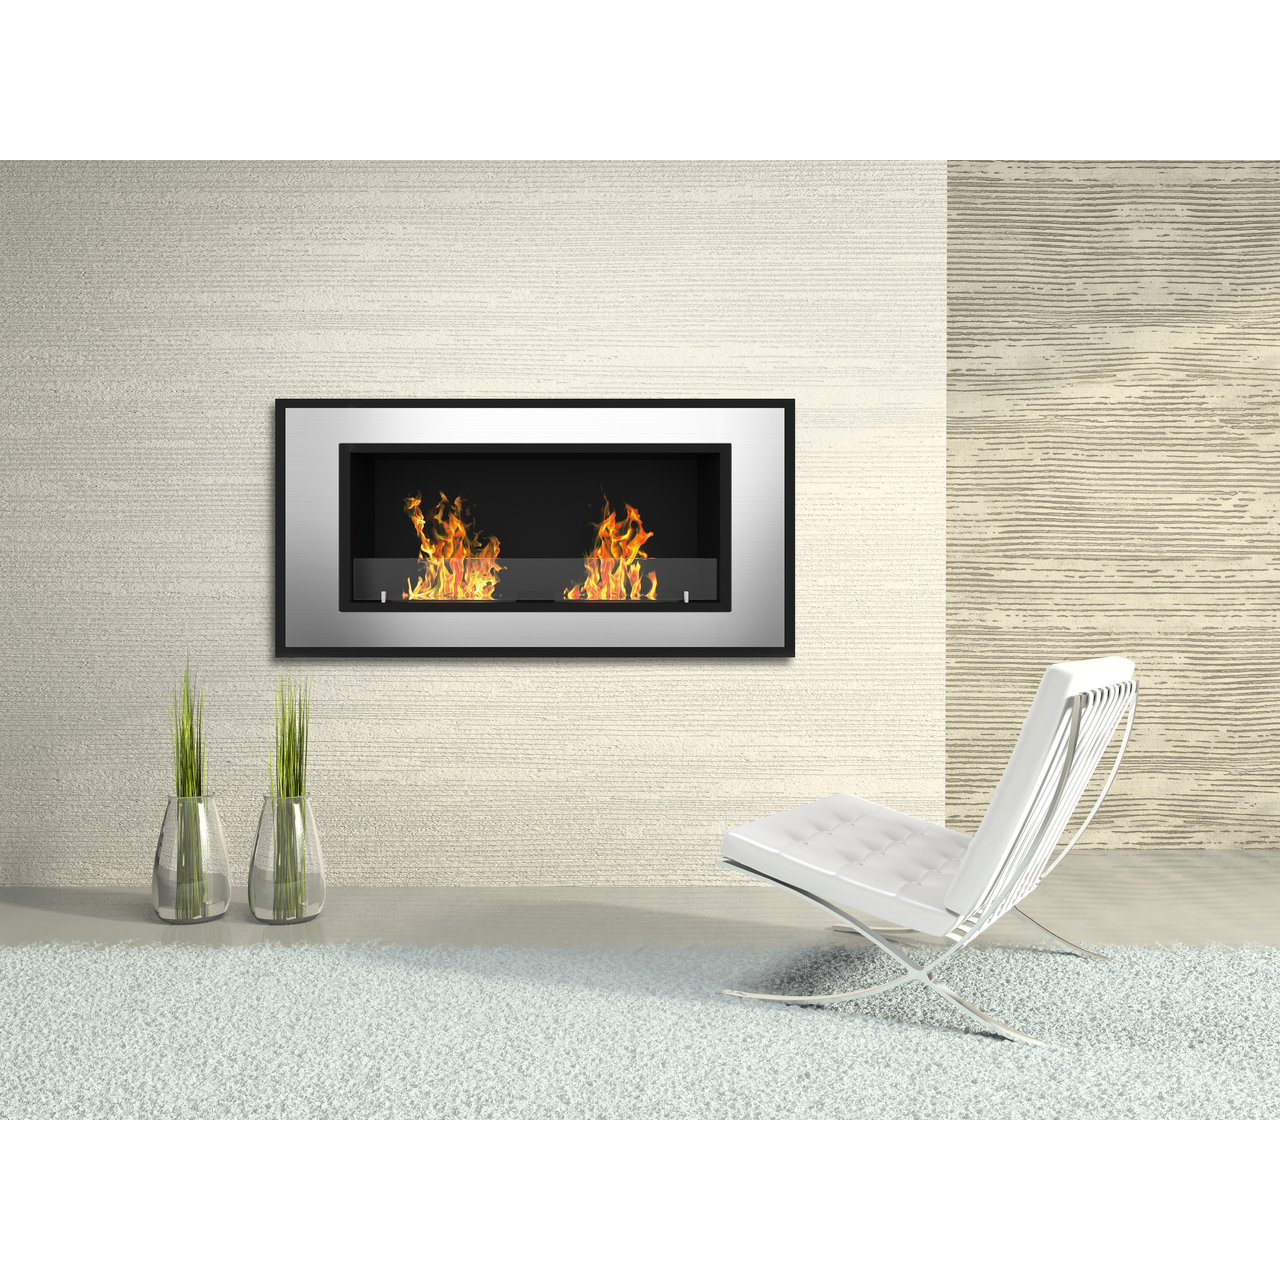 brooks 47 inch ventless built in recessed bio ethanol wall mounted rh regalflame com Corner Wall Mounted Fireplace Ethanol Fireplace TV Wall Unit